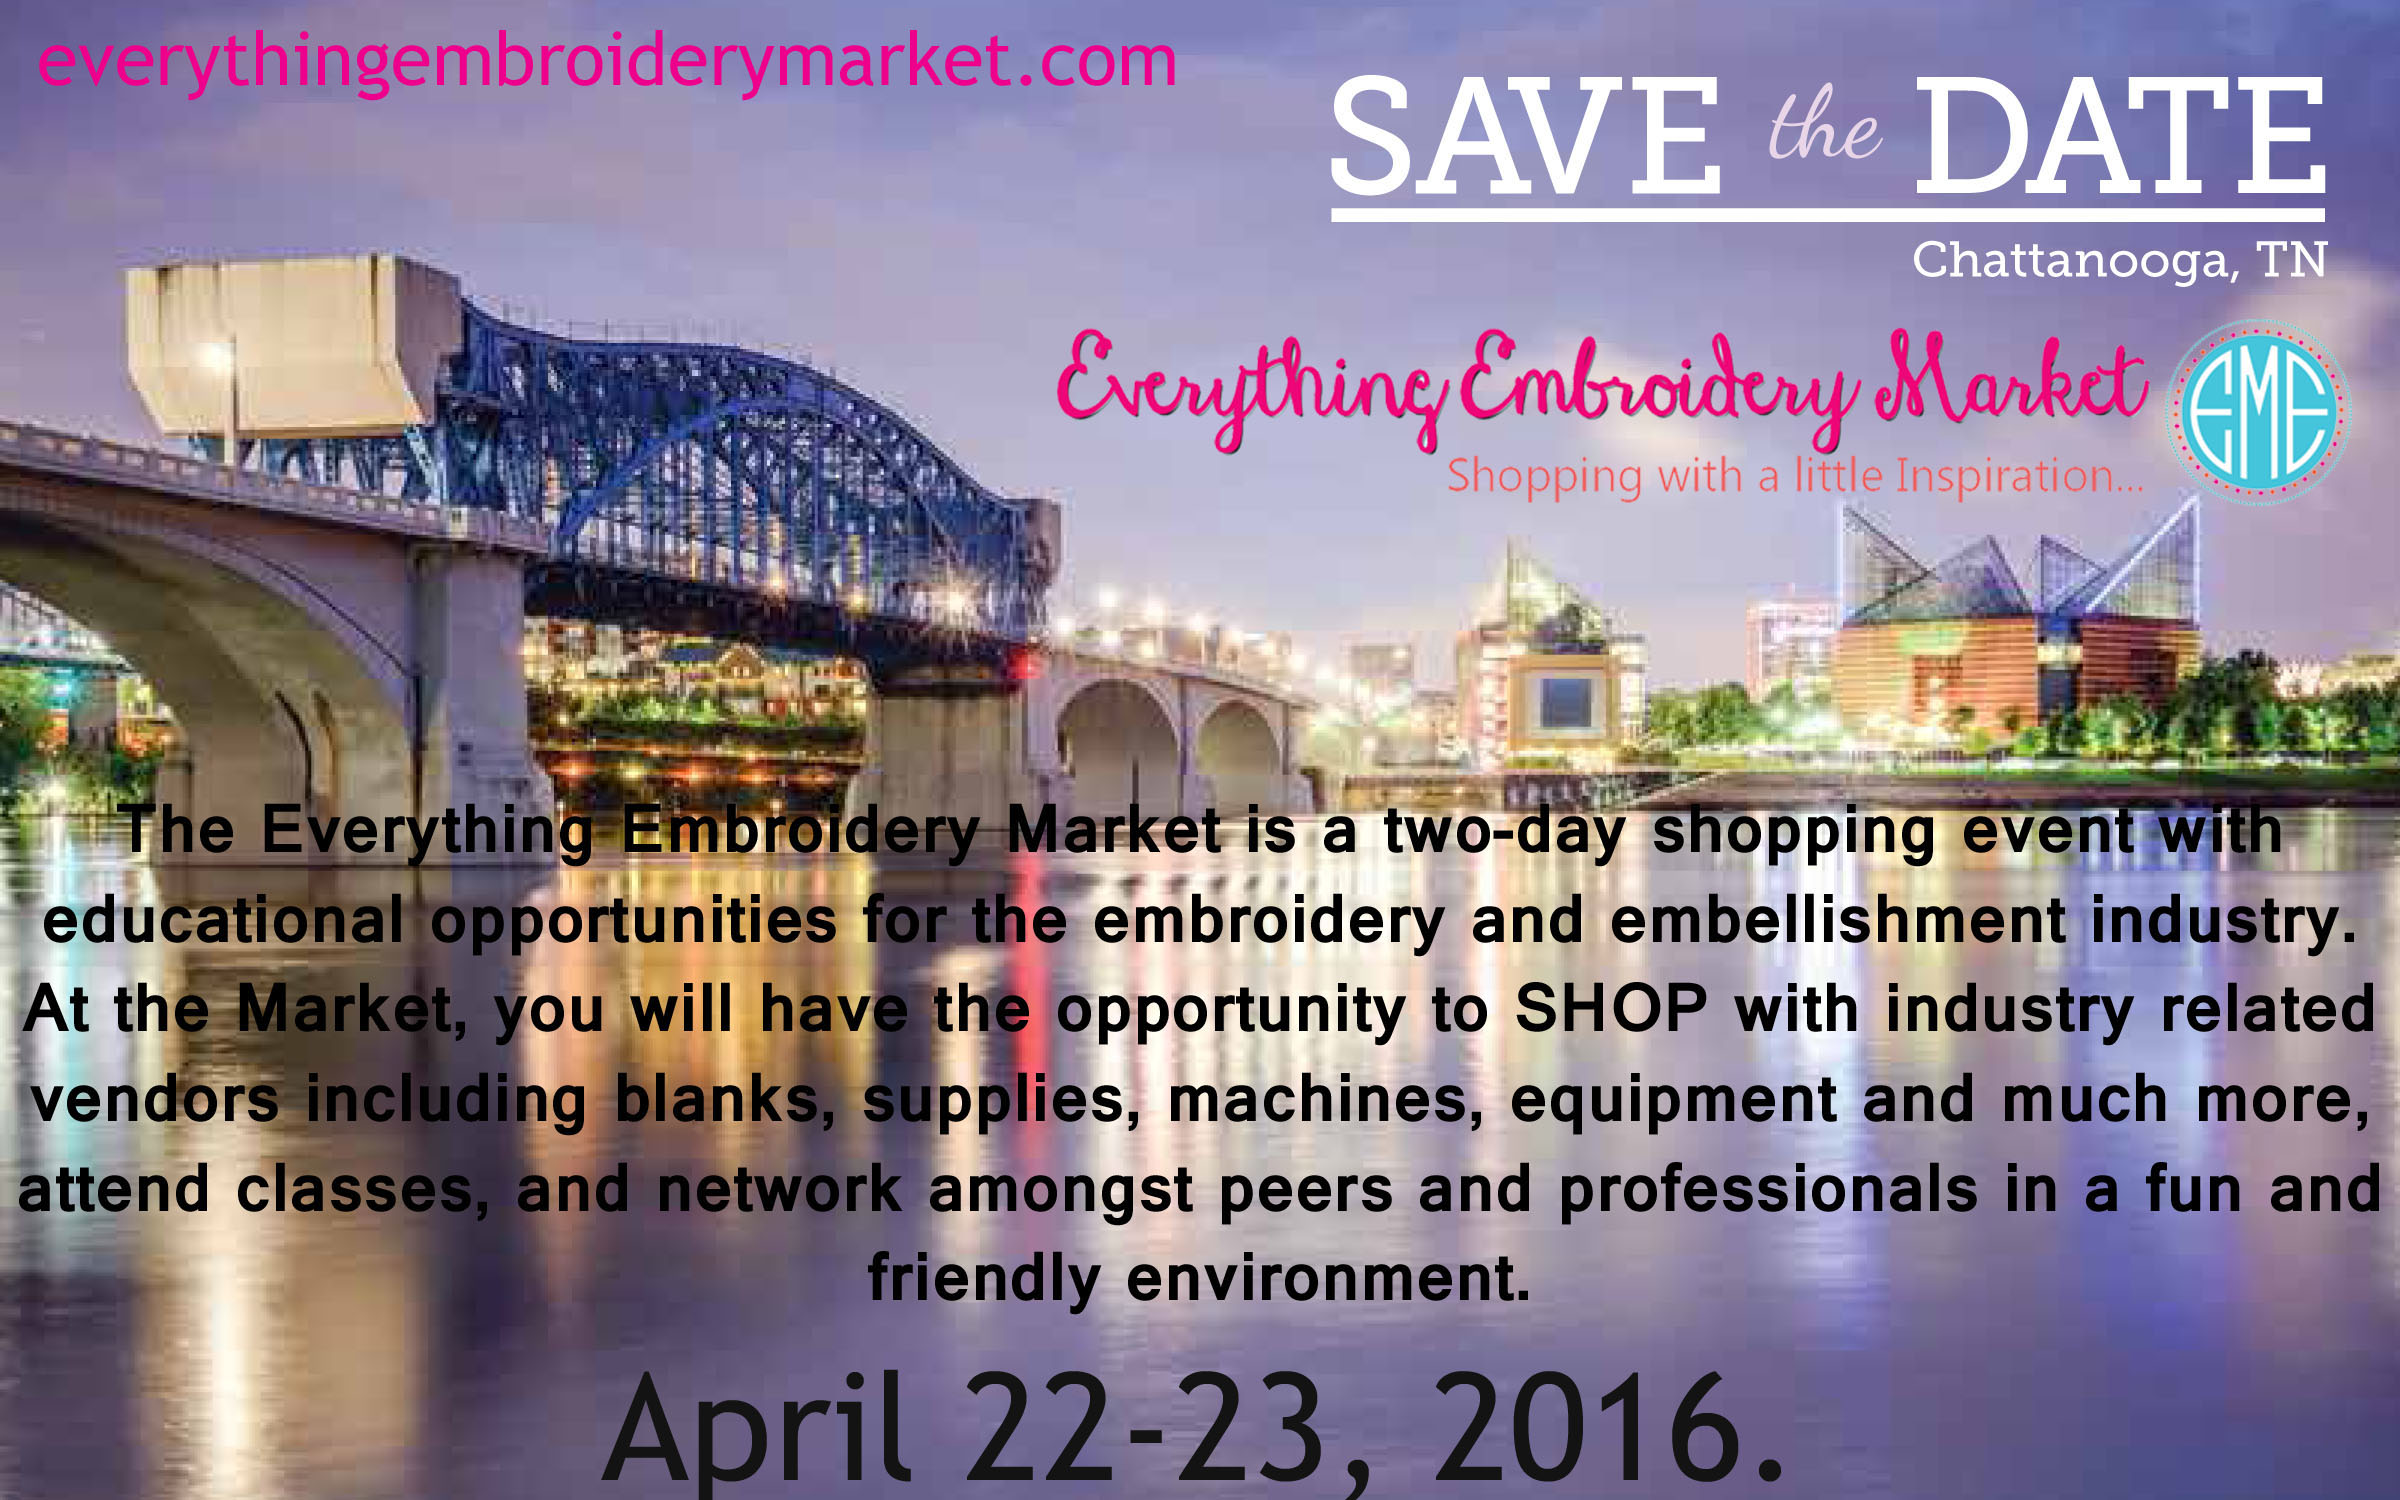 **GIVEAWAY** One FREE ticket to the Everything Embroidery Market